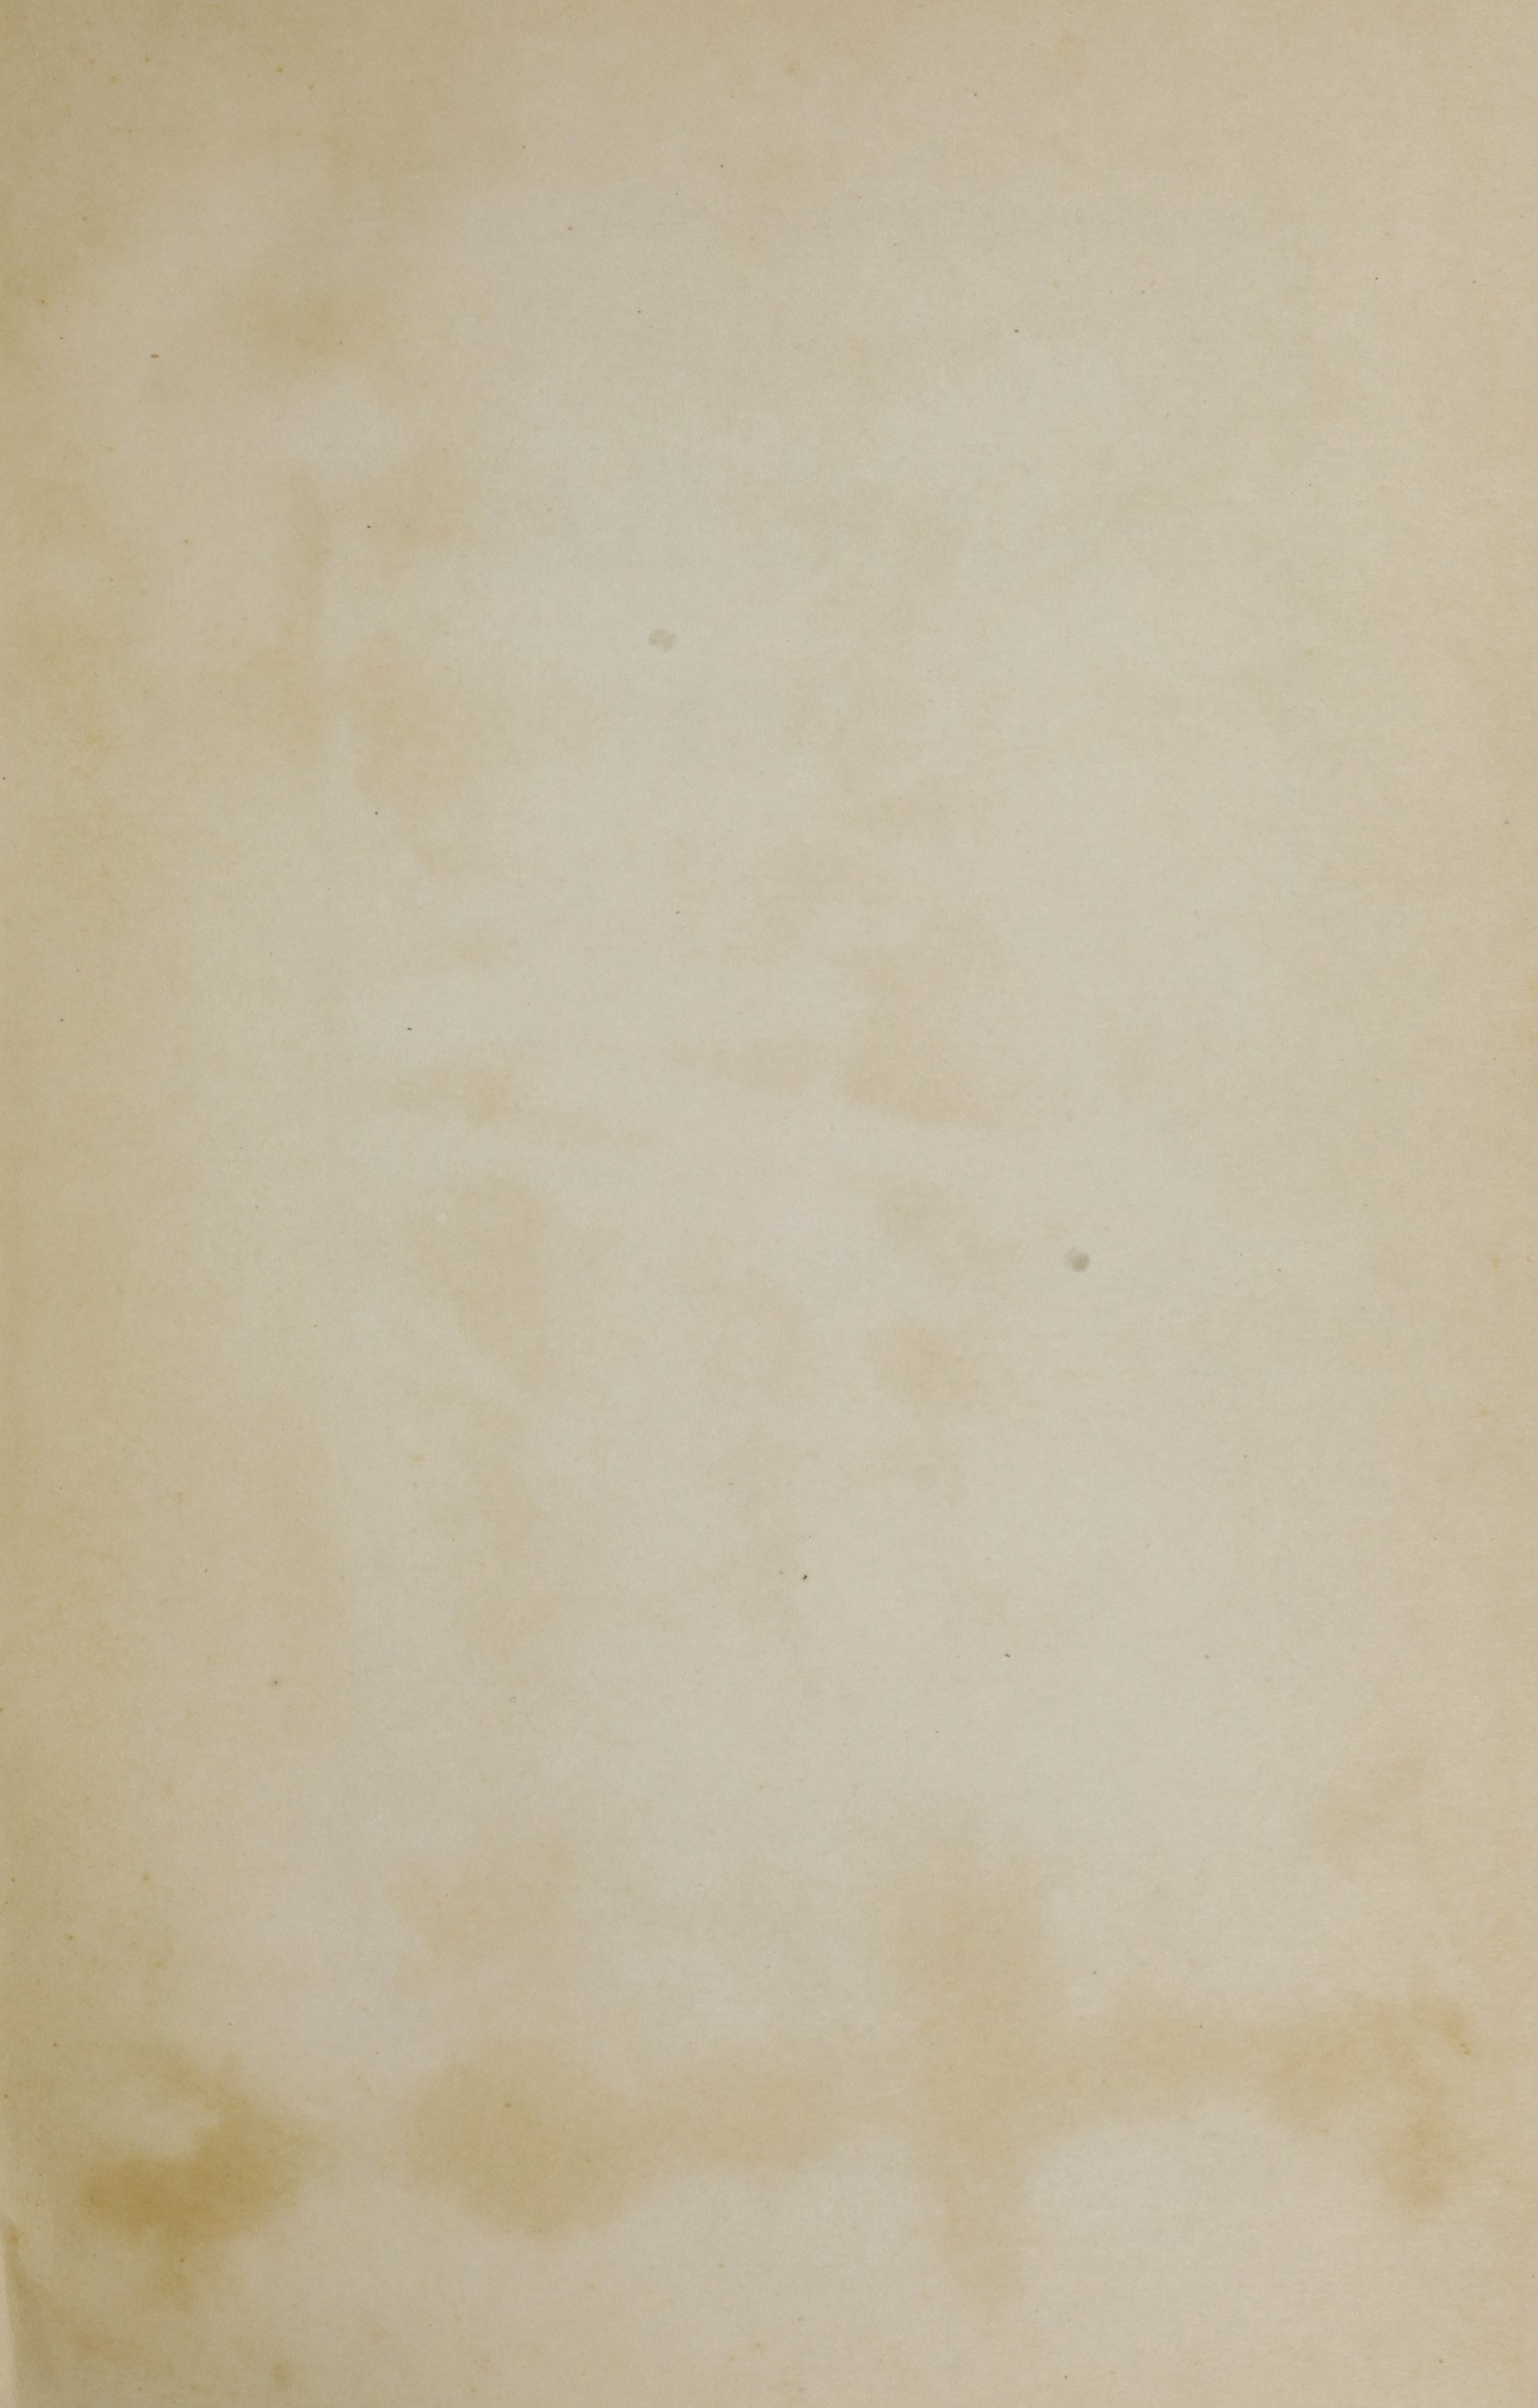 Charleston Yearbook, 1930, blank page